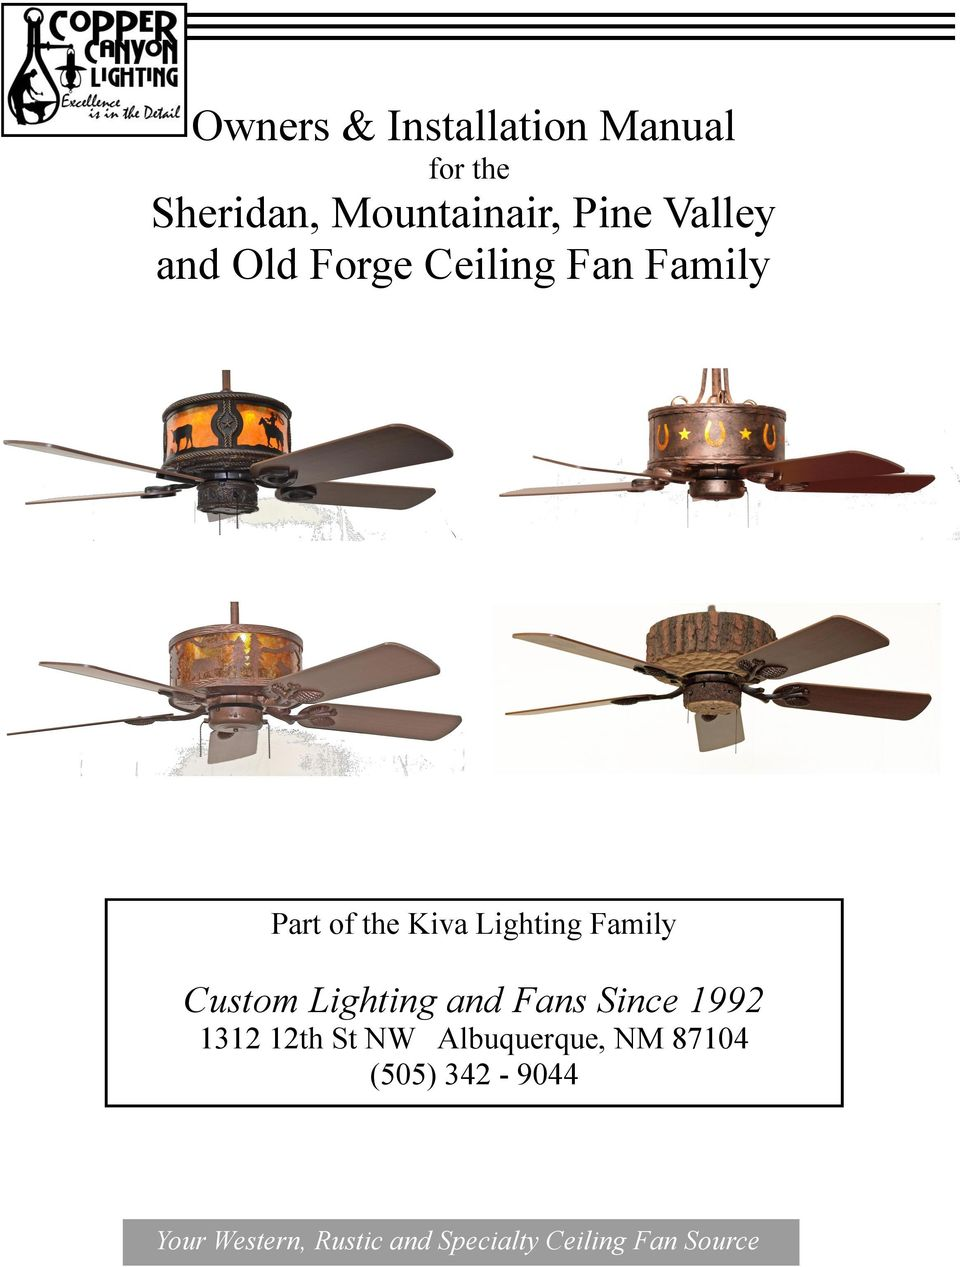 Family Custom Lighting and Fans Since 1992 1312 12th St NW